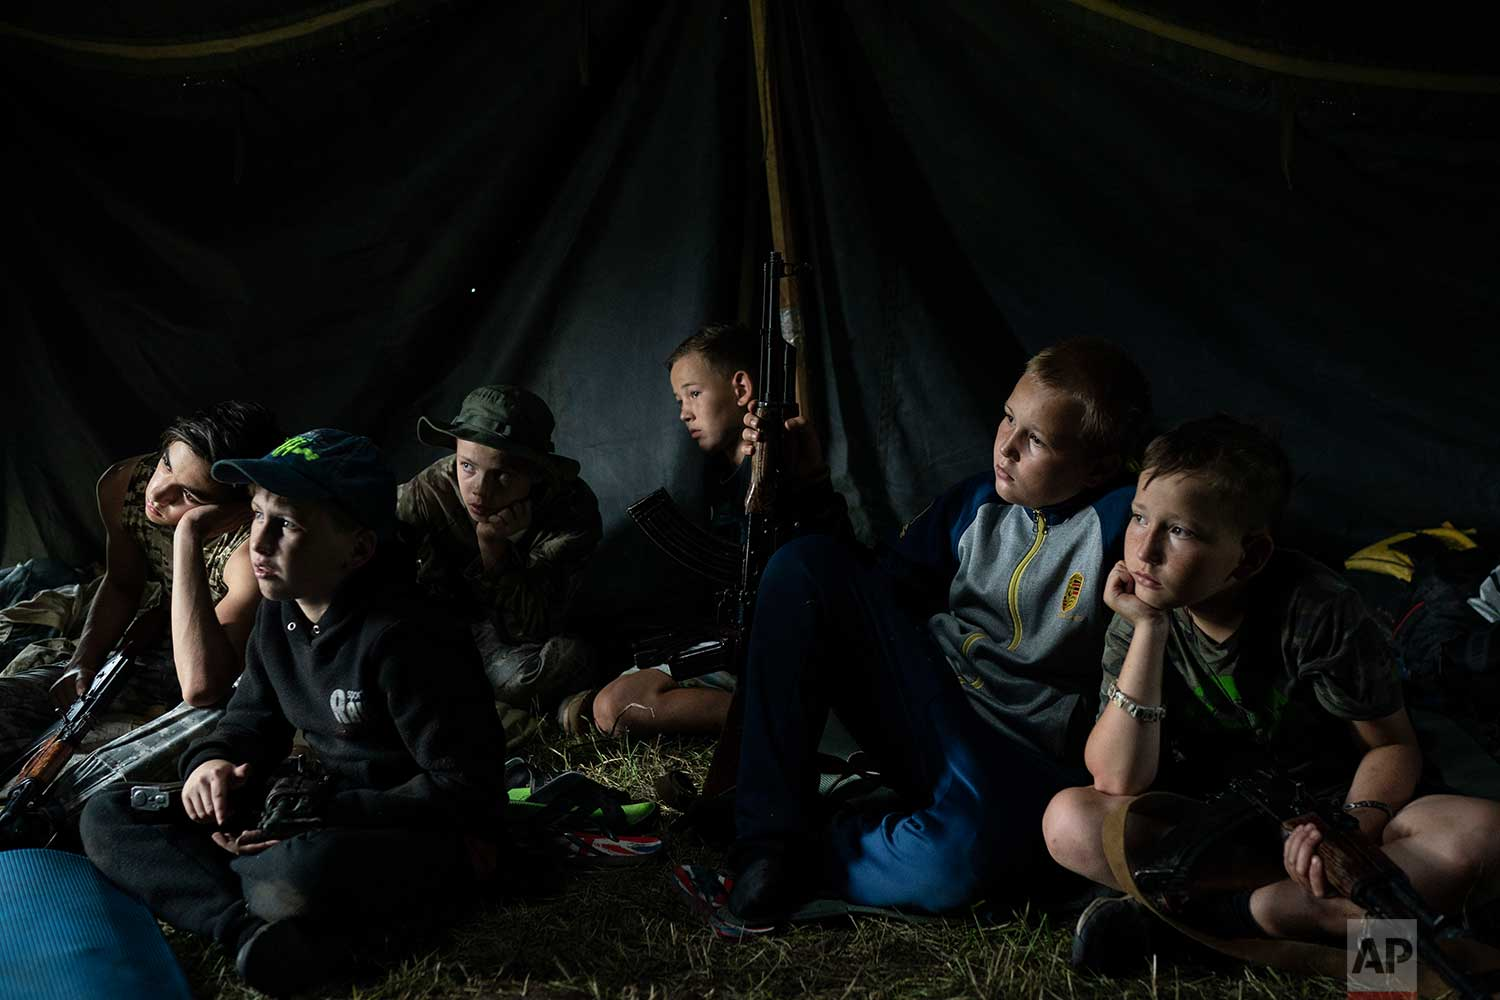 """In this July 28, 2018 photo, young participants of the """"Temper of will"""" summer camp, organized by the nationalist Svoboda party, sit inside a tent with their AK-47 riffles as they receive instructions during a tactical exercise in a village near Ternopil, Ukraine. (AP Photo/Felipe Dana)"""